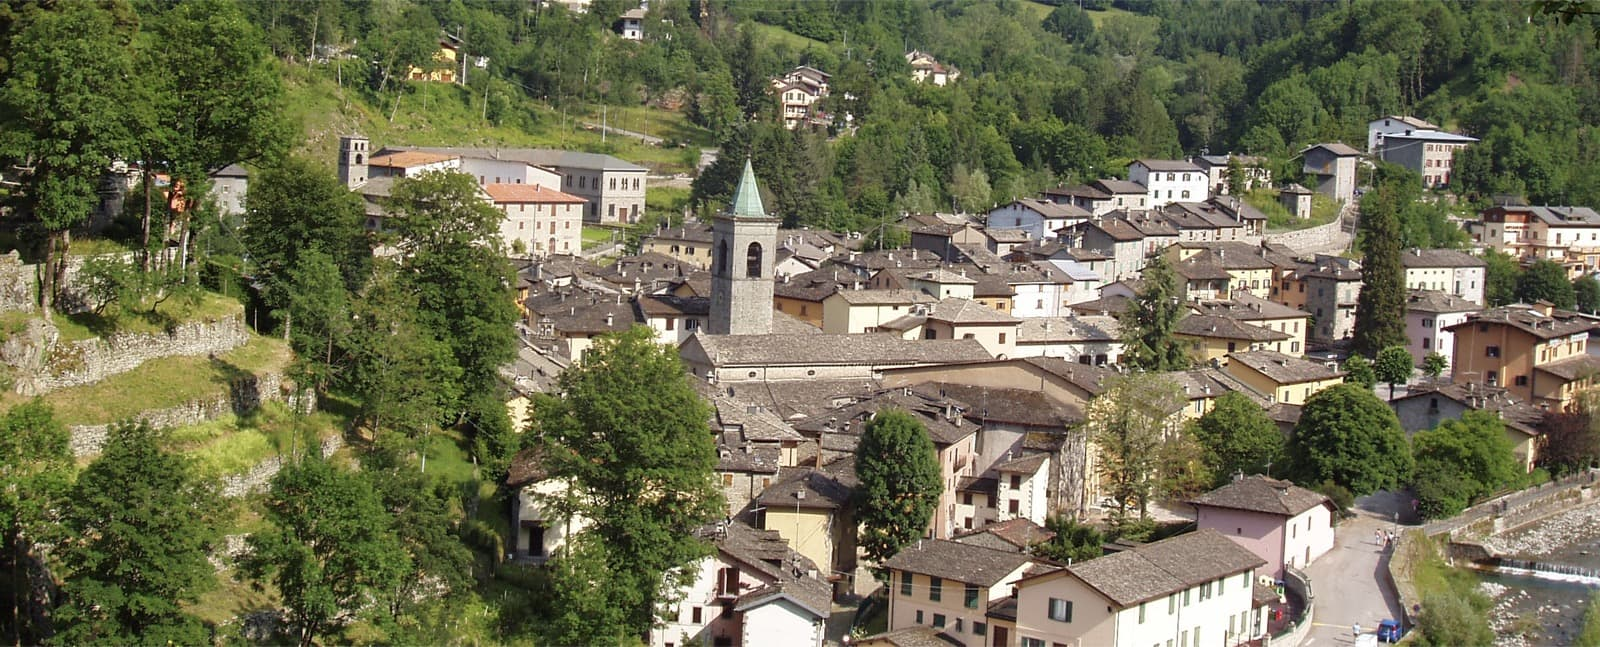 Fiumalbo: a stone gem at the foot of Mount Cimone